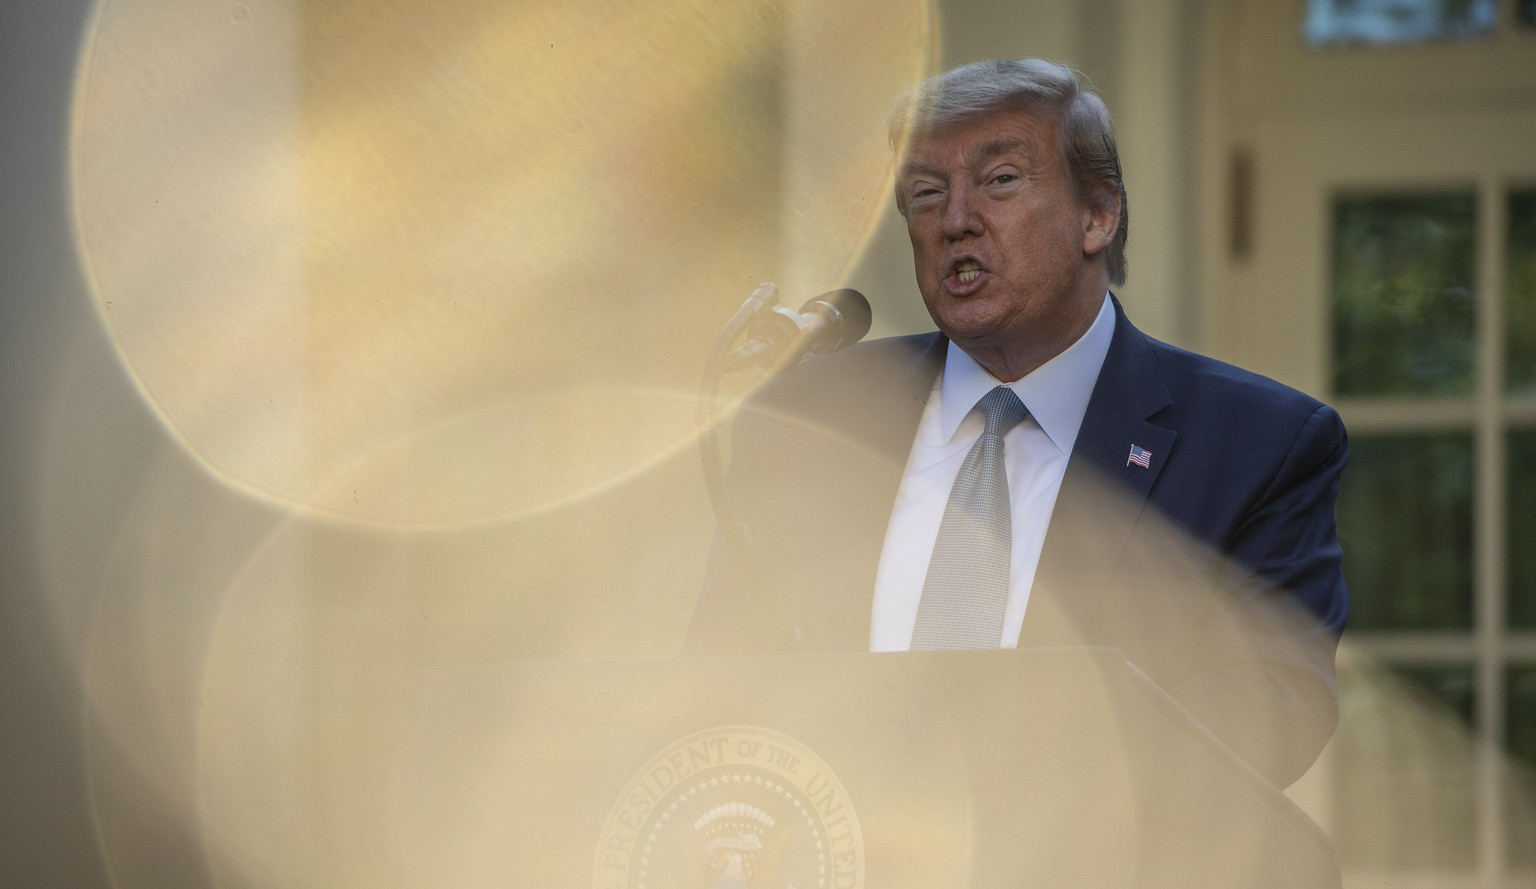 President Donald Trump speaks about the coronavirus in the Rose Garden of the White House, Wednesday, April 15, 2020, in Washington. (AP Photo/Alex Brandon) Donald Trump